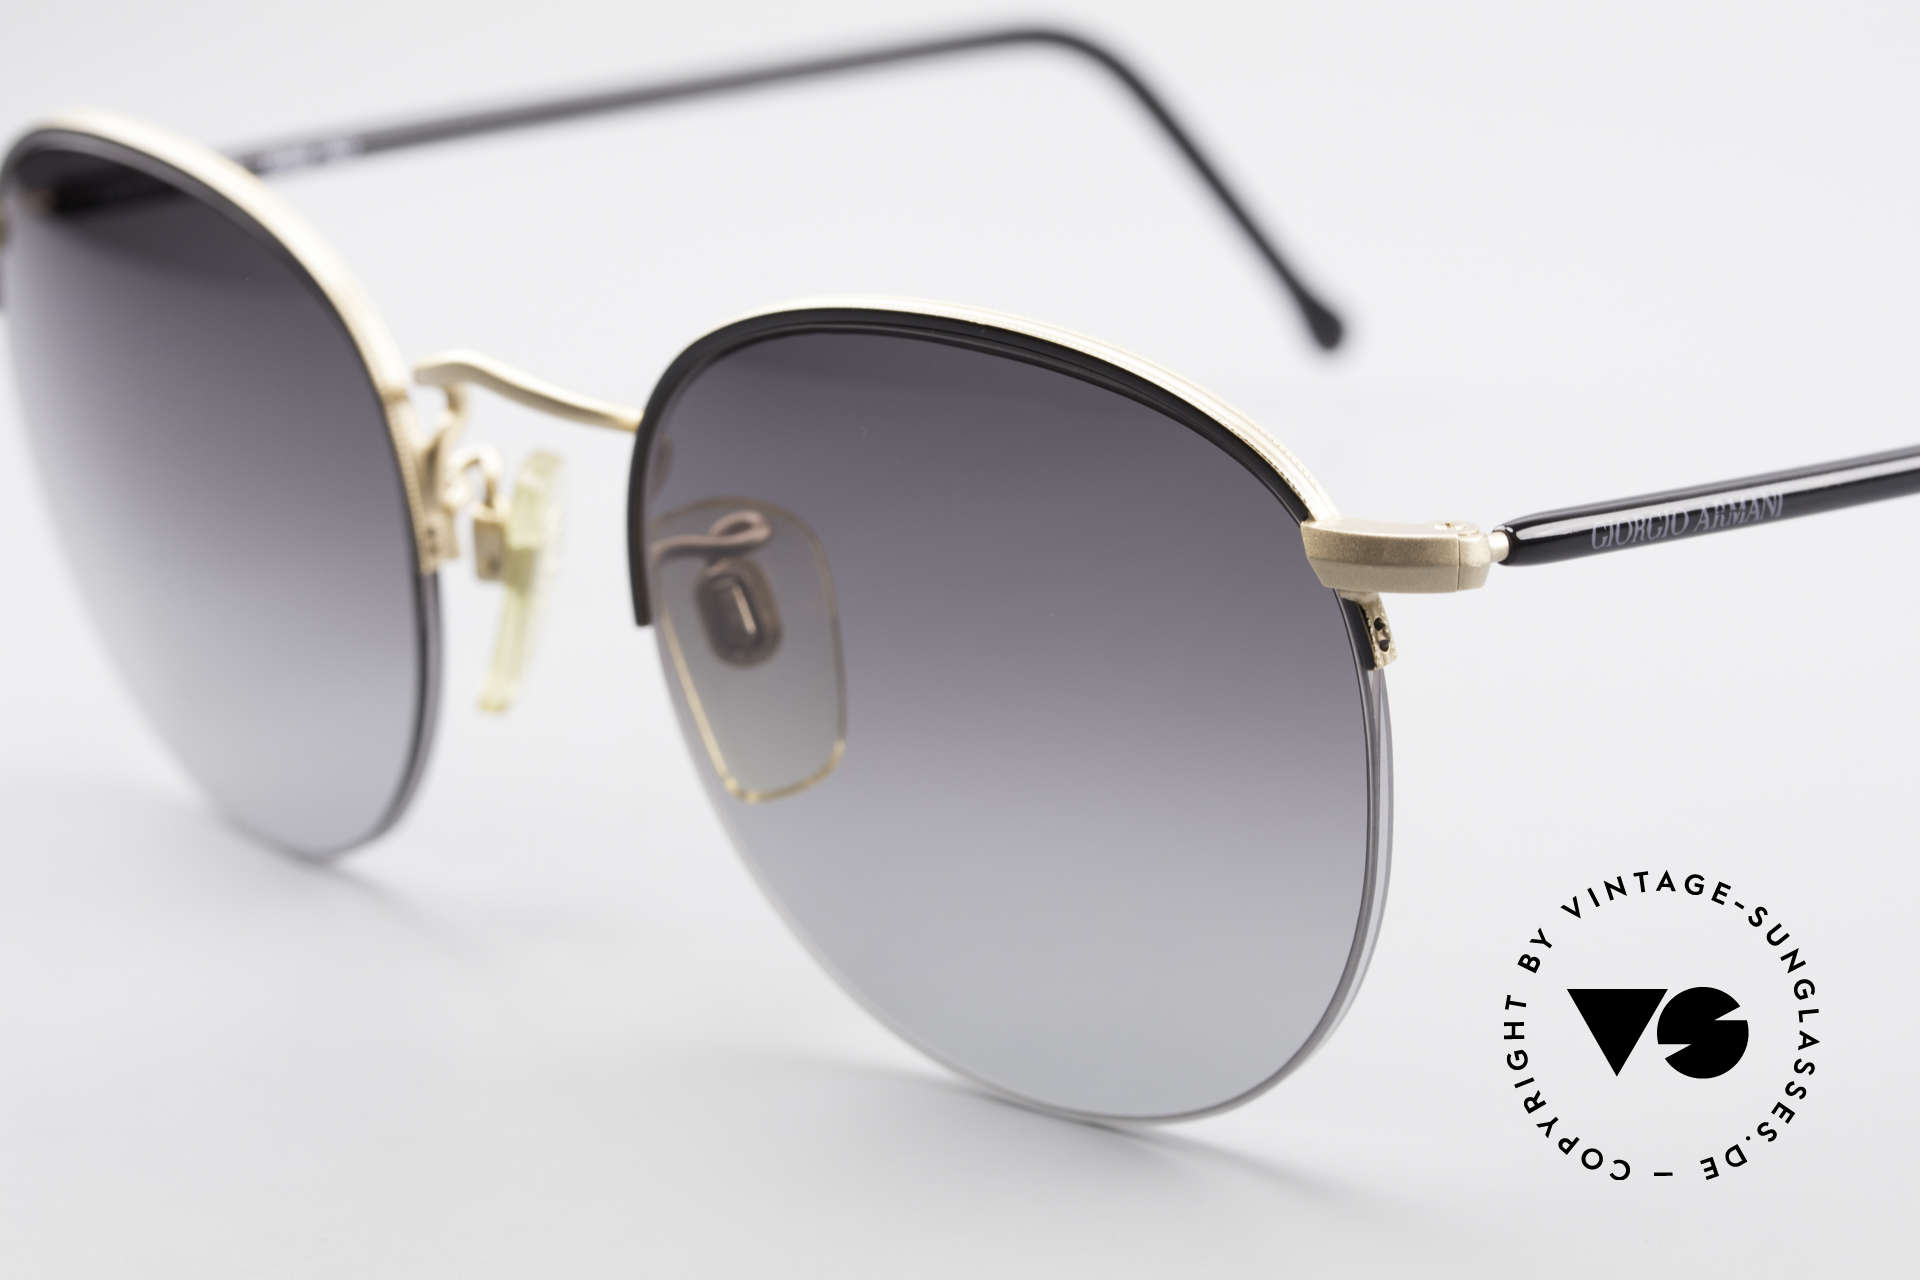 Giorgio Armani 142 Rimless Panto Sunglasses 80's, unworn, NOS, one of a kind and outstanding quality, Made for Men